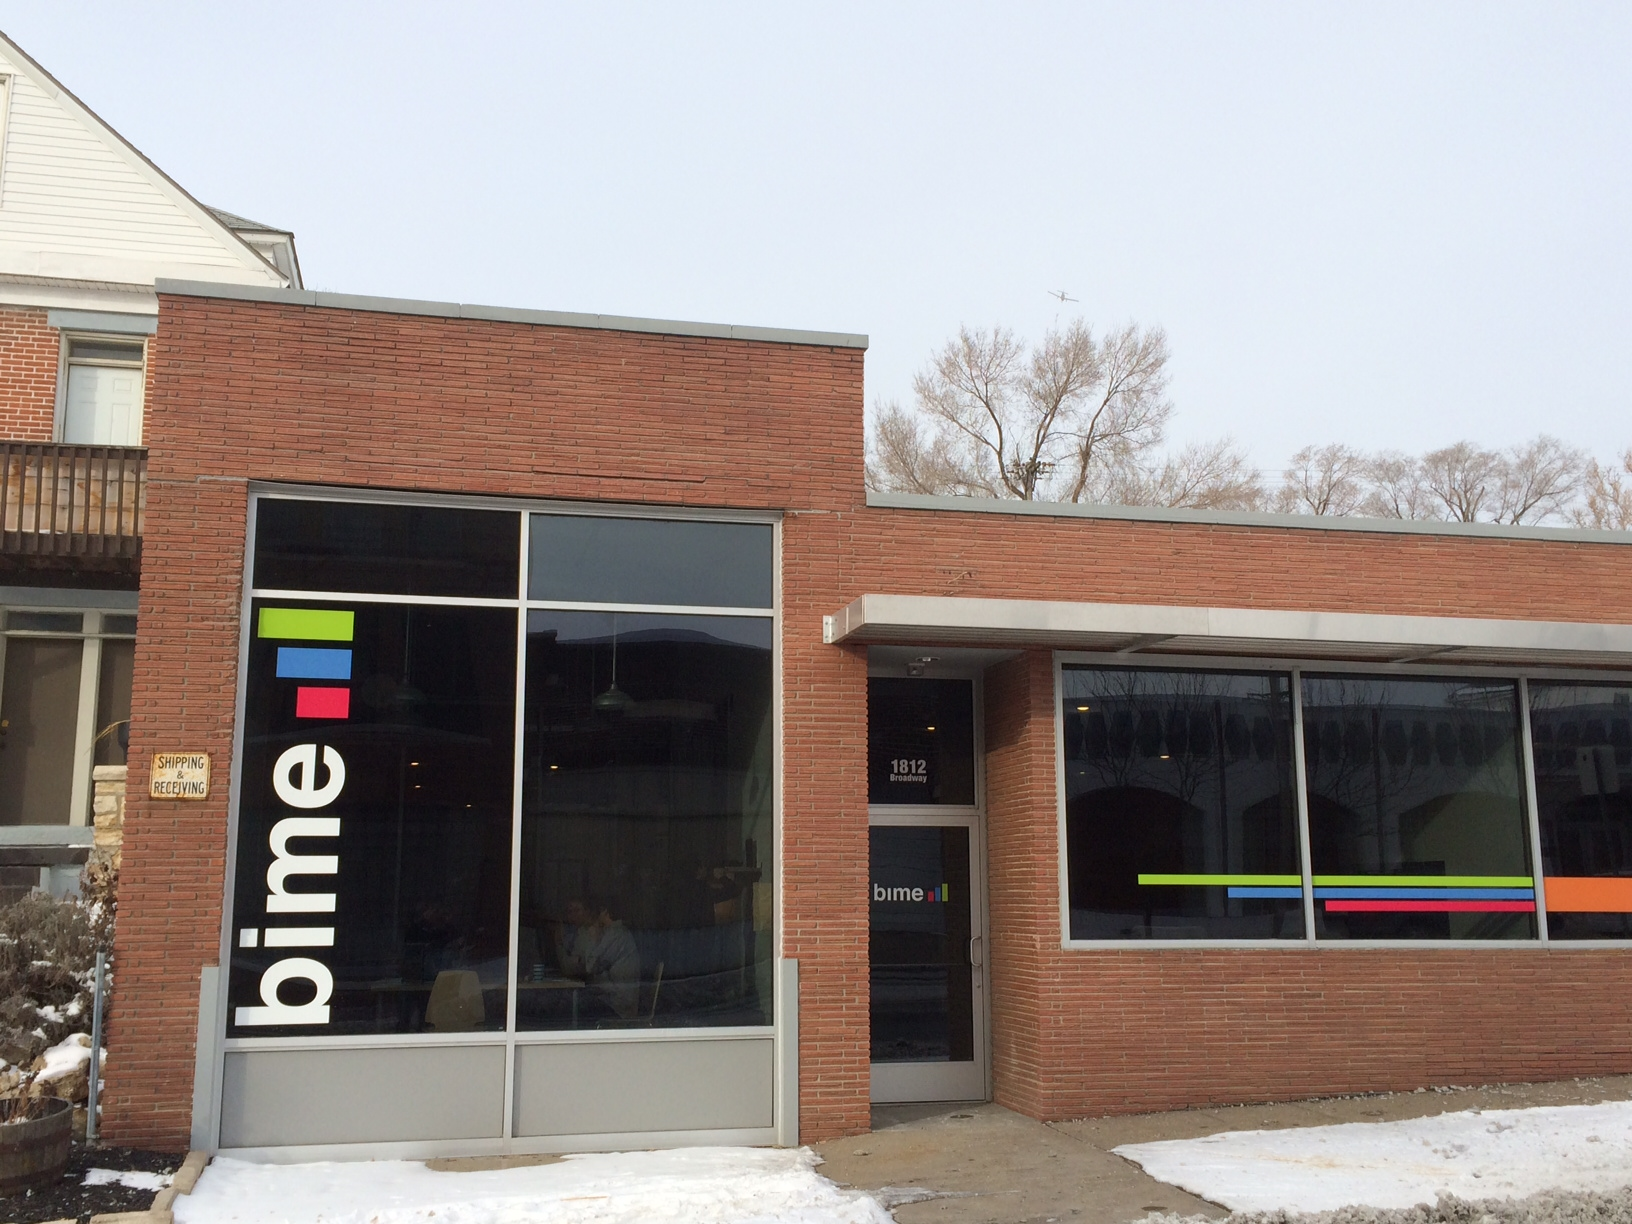 Cold weather, warm colors     1812 Broadway Blvd, Kansas City, MO  .    BIME headquarters   located in the entrepreneurial hotbed of 'The Crossroads' neighborhood of KC,